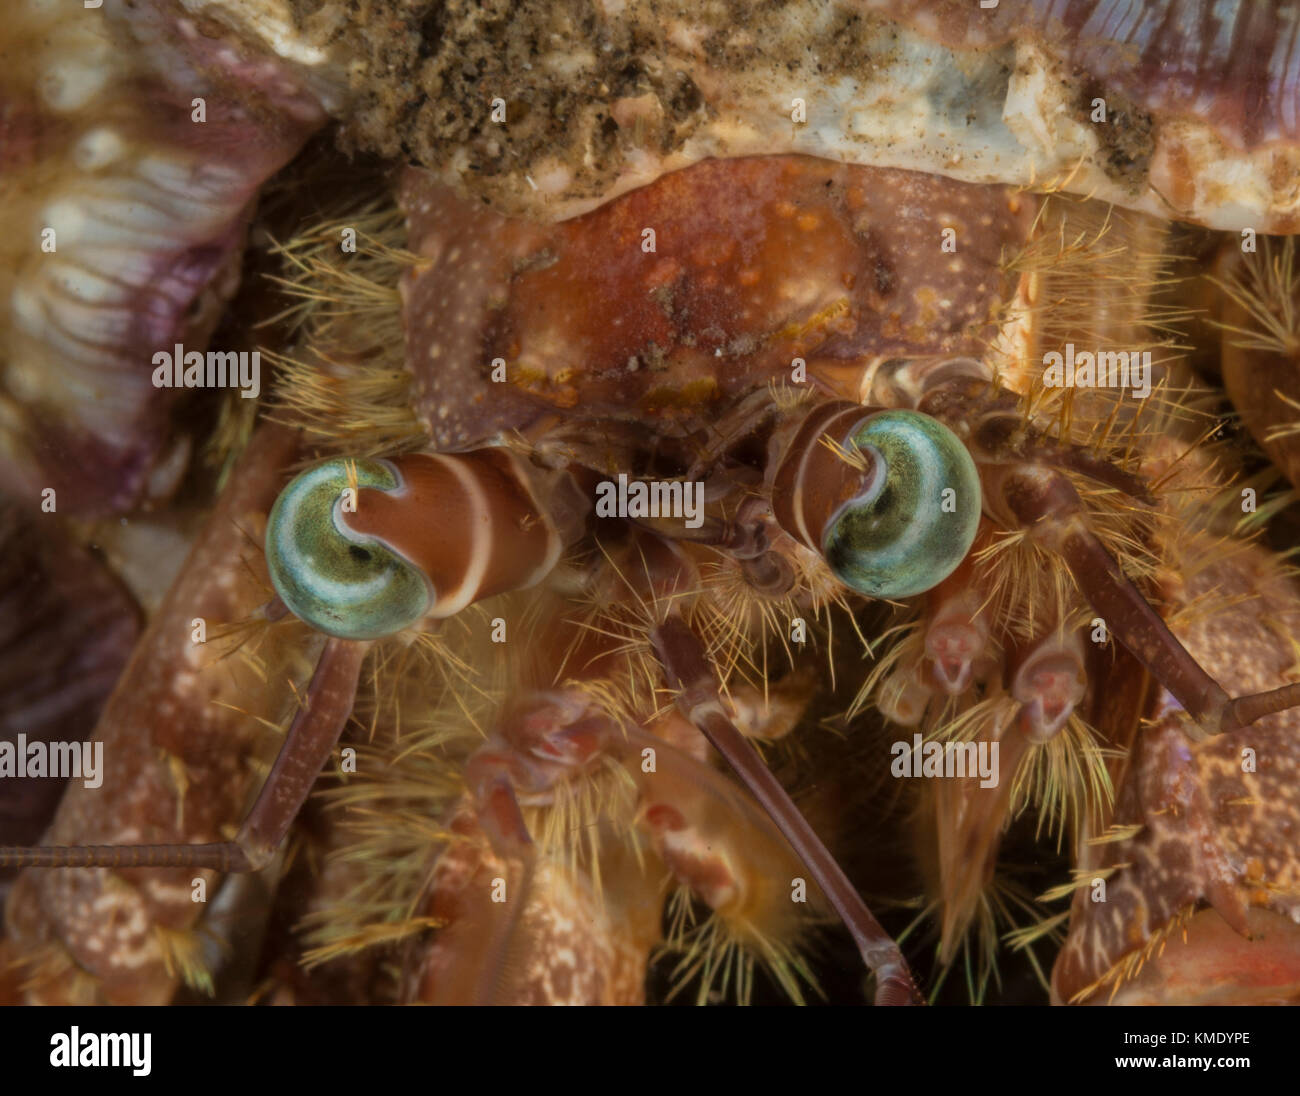 Hermit crab on a coral - Stock Image